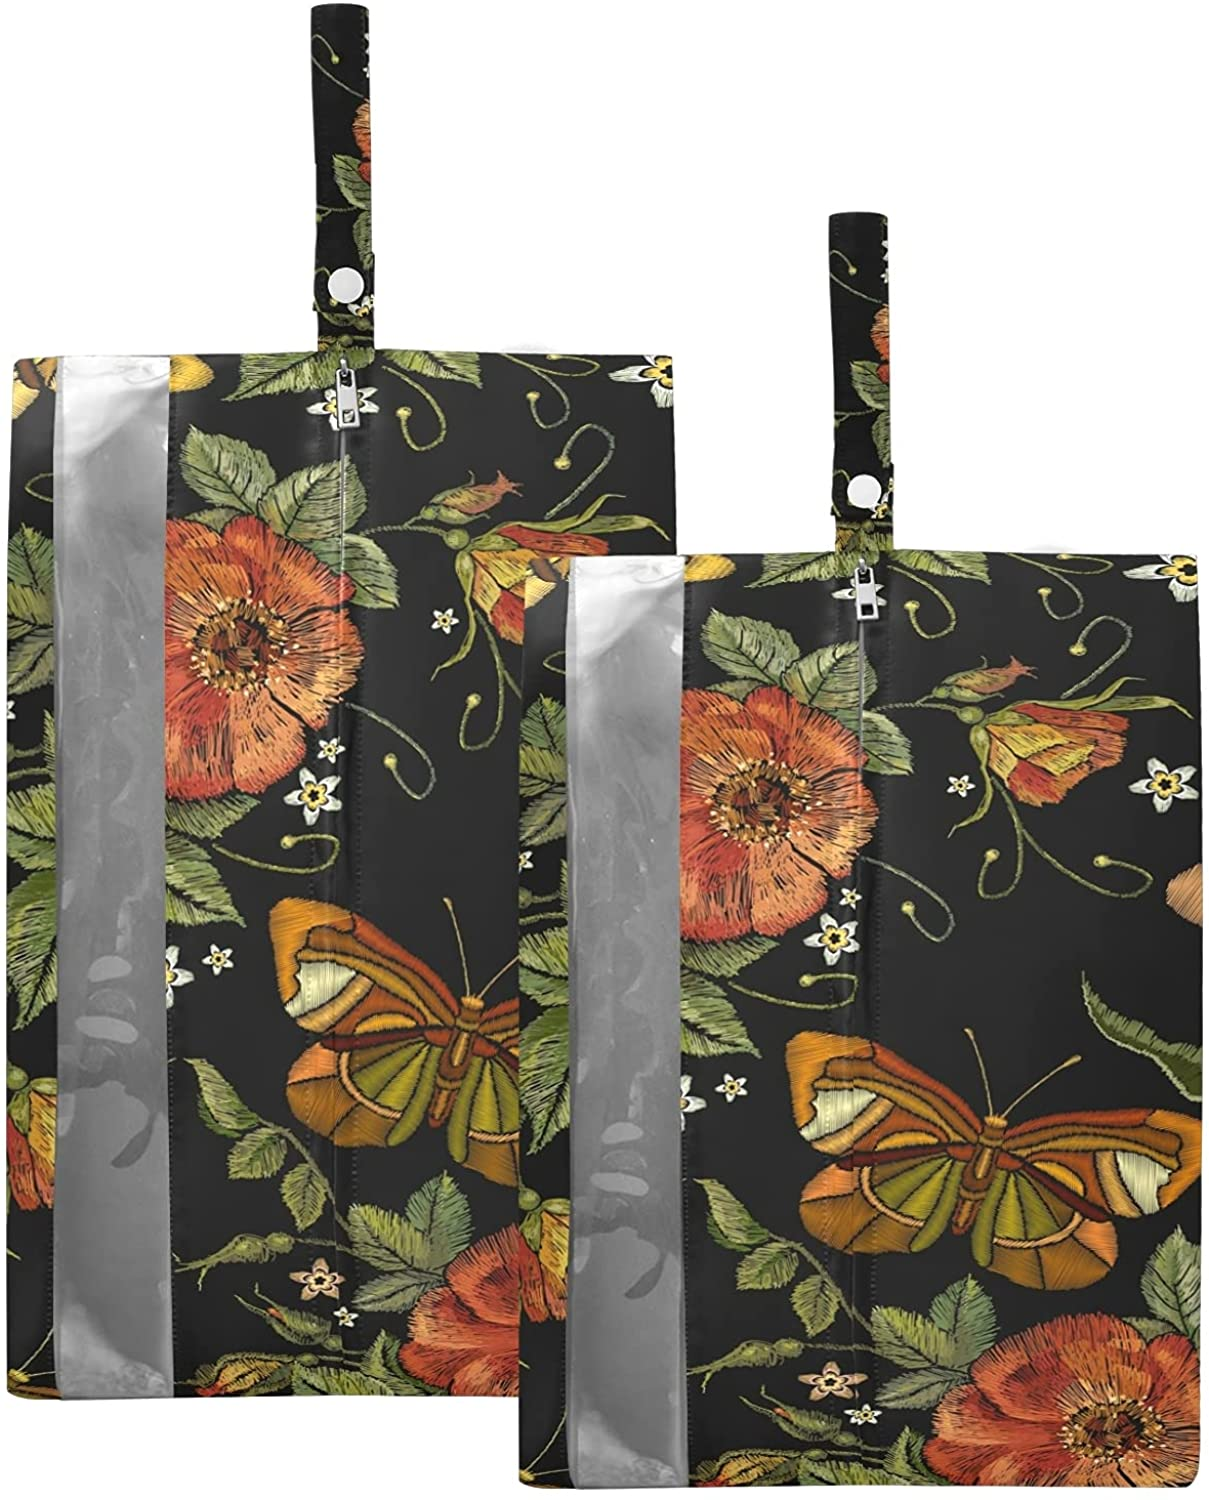 SUSIYO CHIC BUTTERFLY RED FLOWER SHOE BAGS FOR TRAVEL SHOE STORAGE ORGANIZER BAGS SET ZIPPER 2 PACK